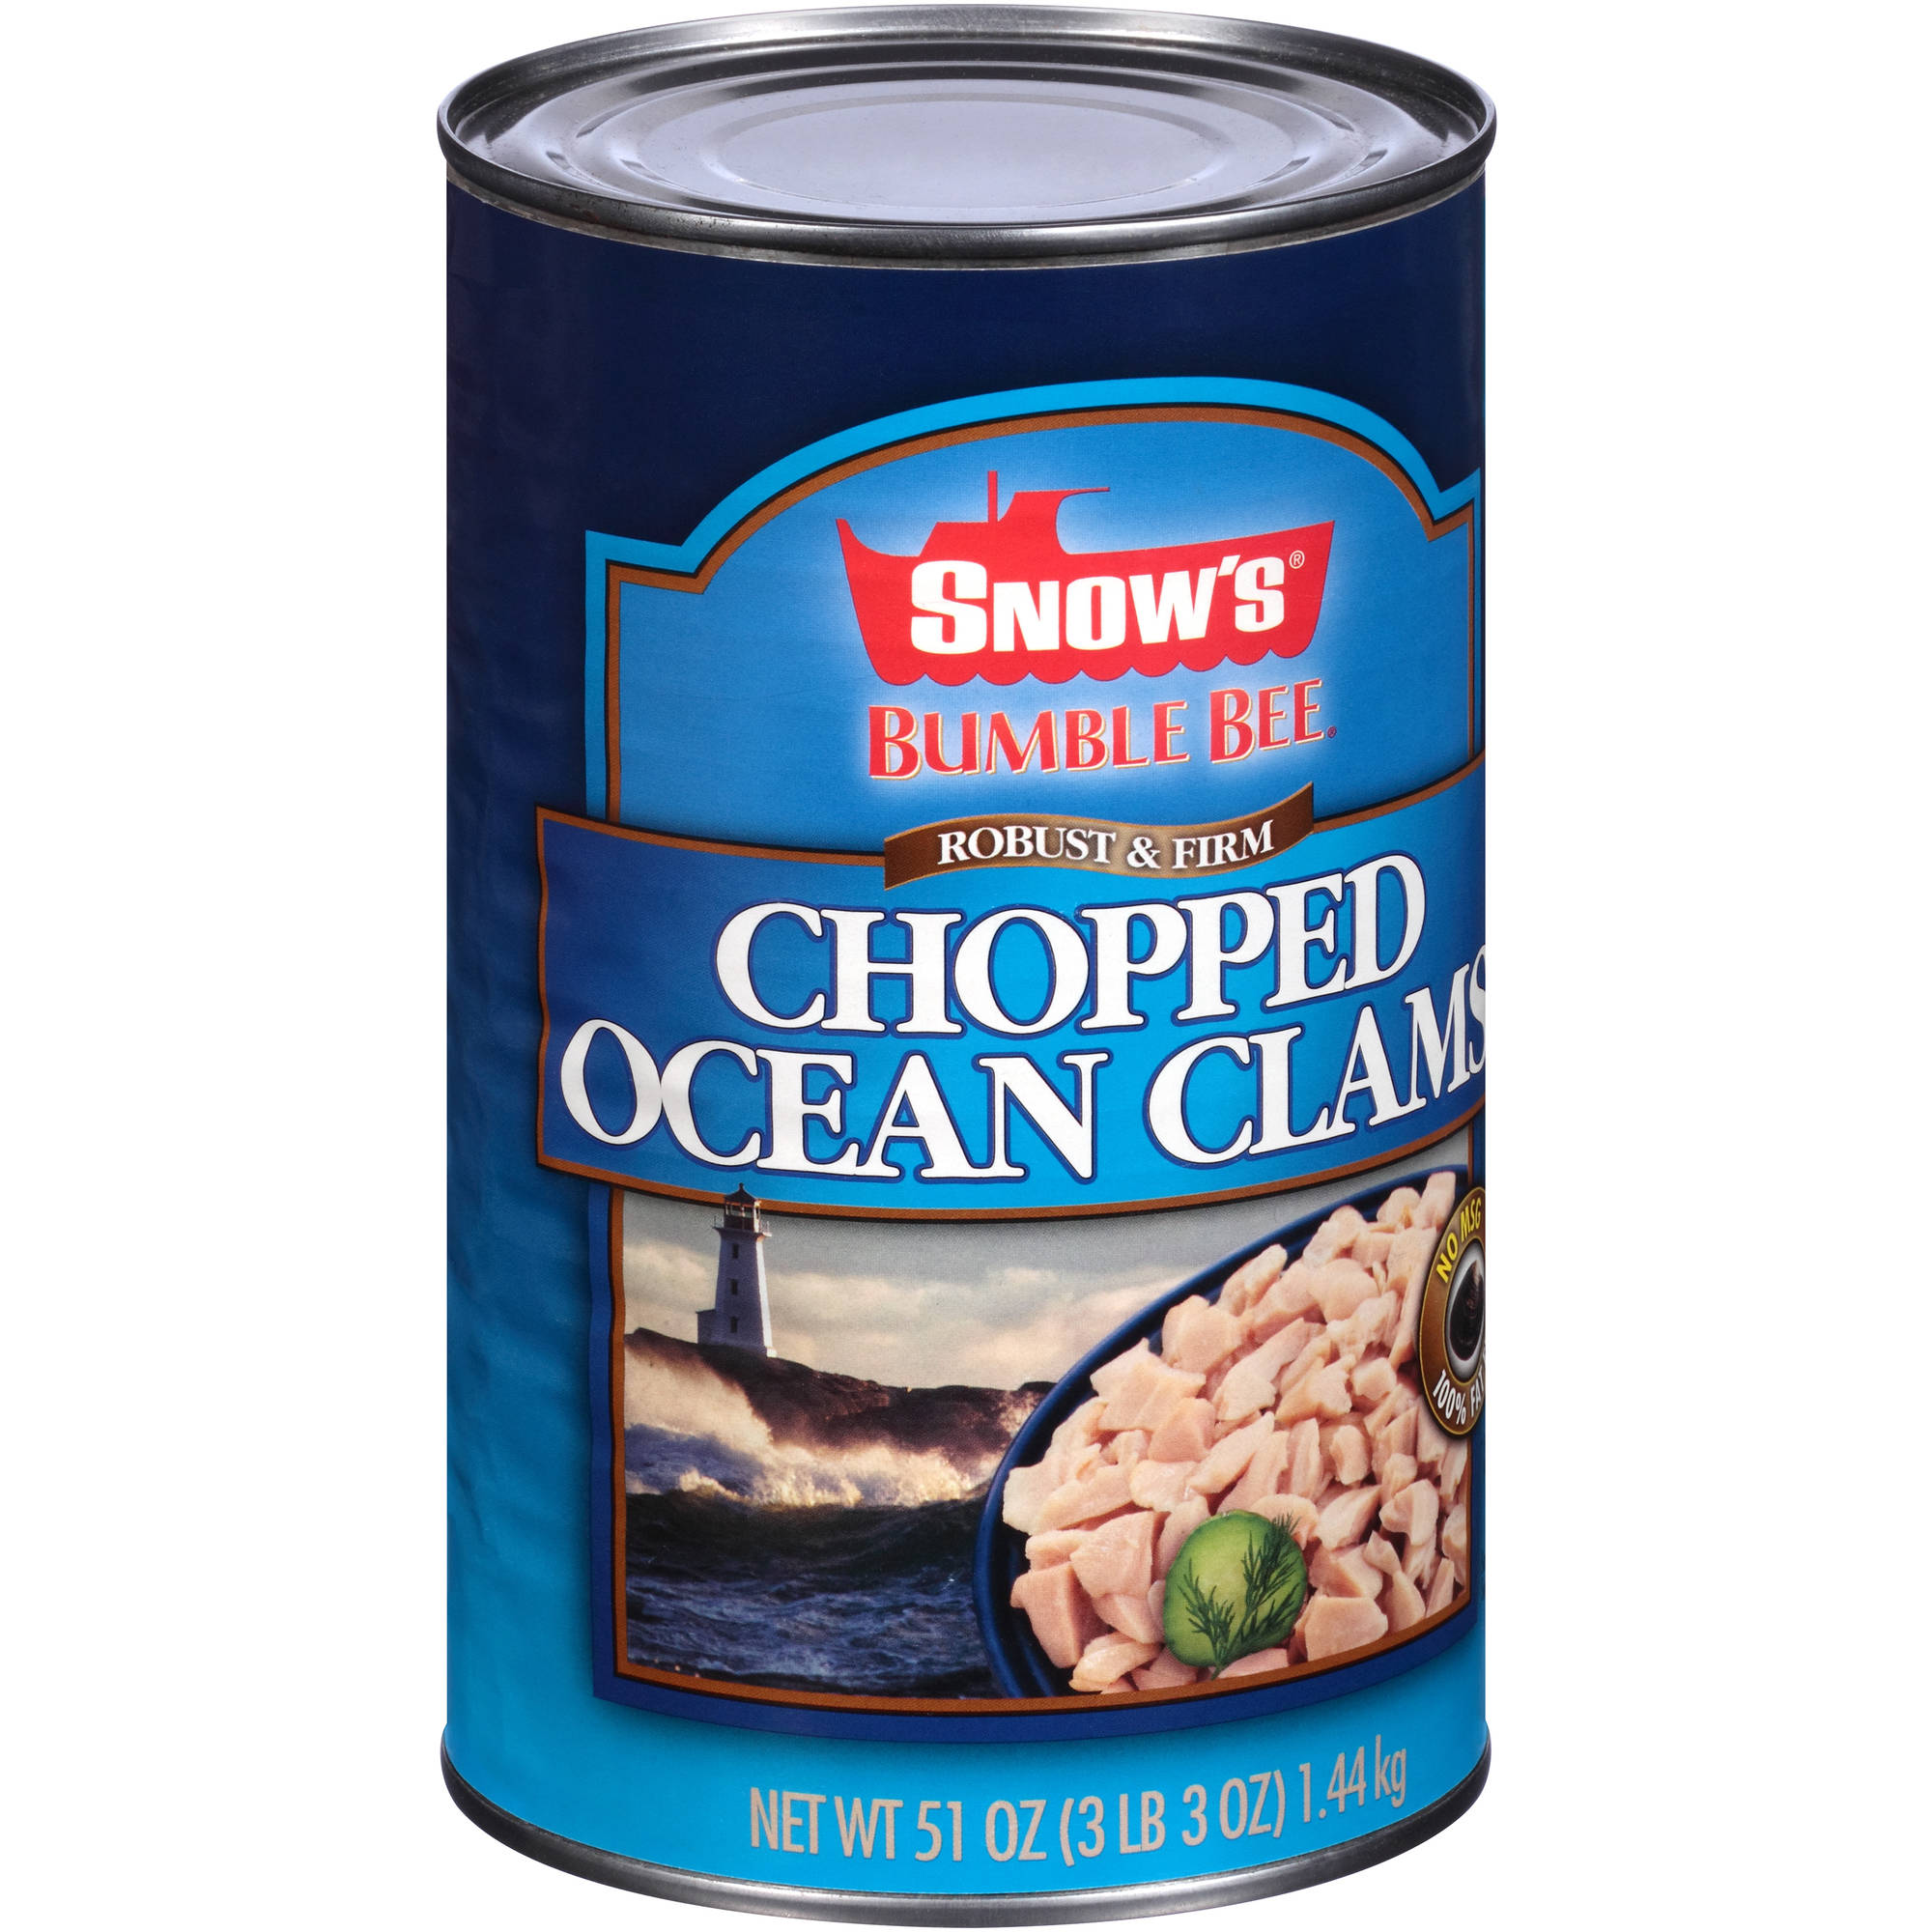 Snow's Bumble Bee Robust & Firm Chopped Ocean Clams, 51 oz